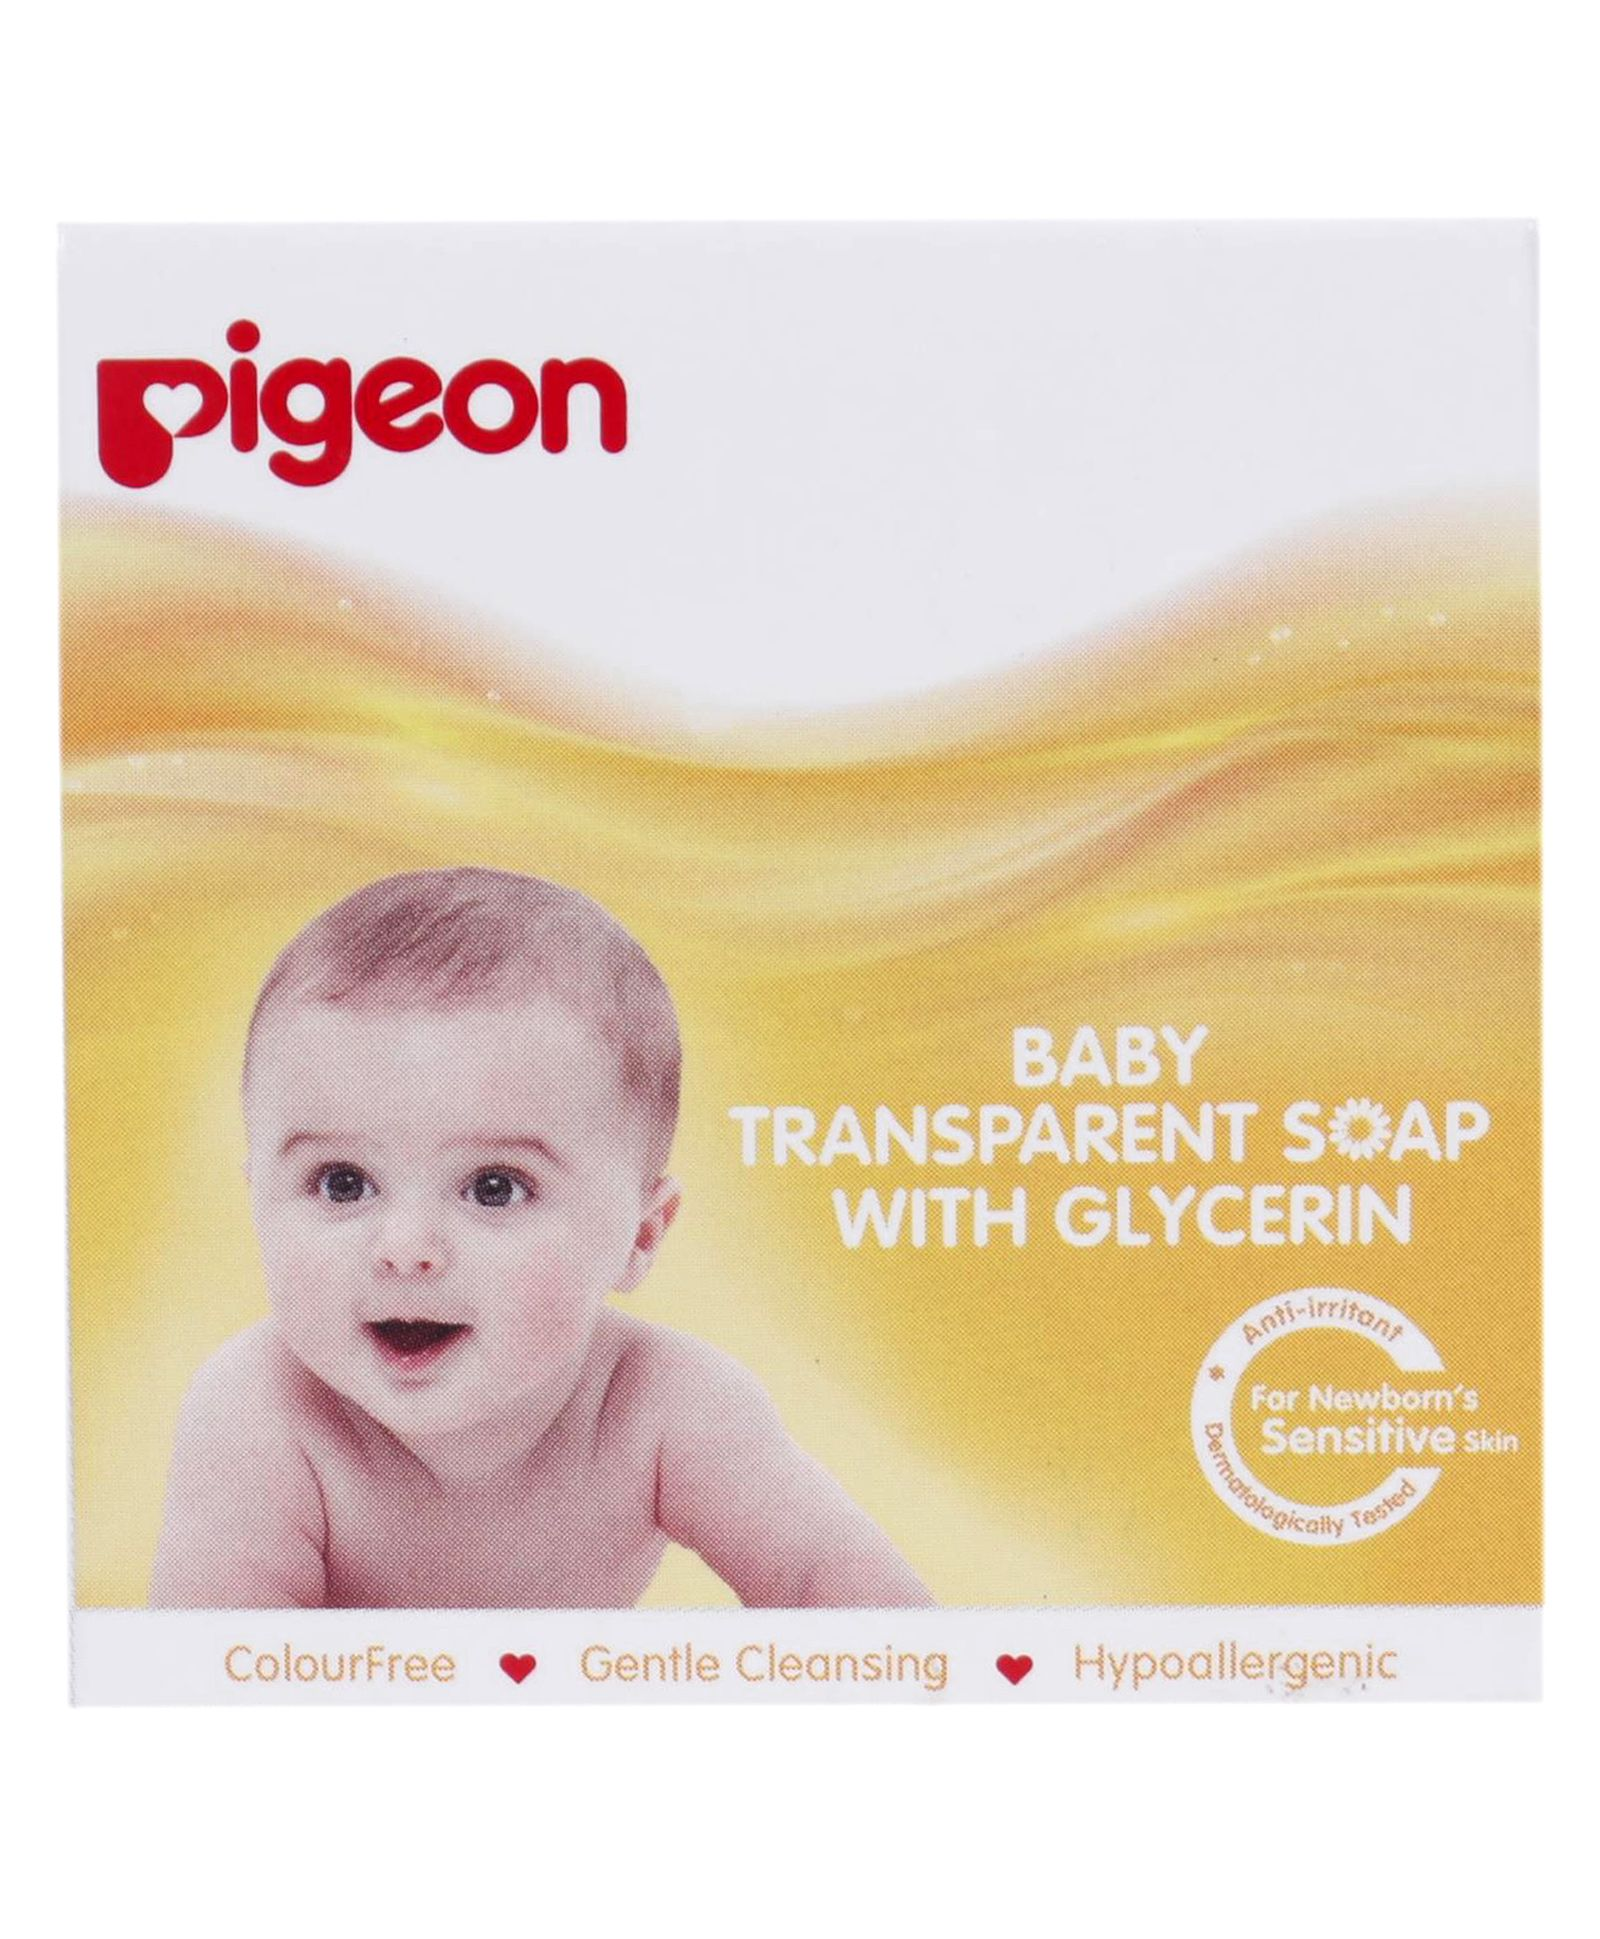 Buy Pigeon Baby Transparent Soap With Glycerin Online MY